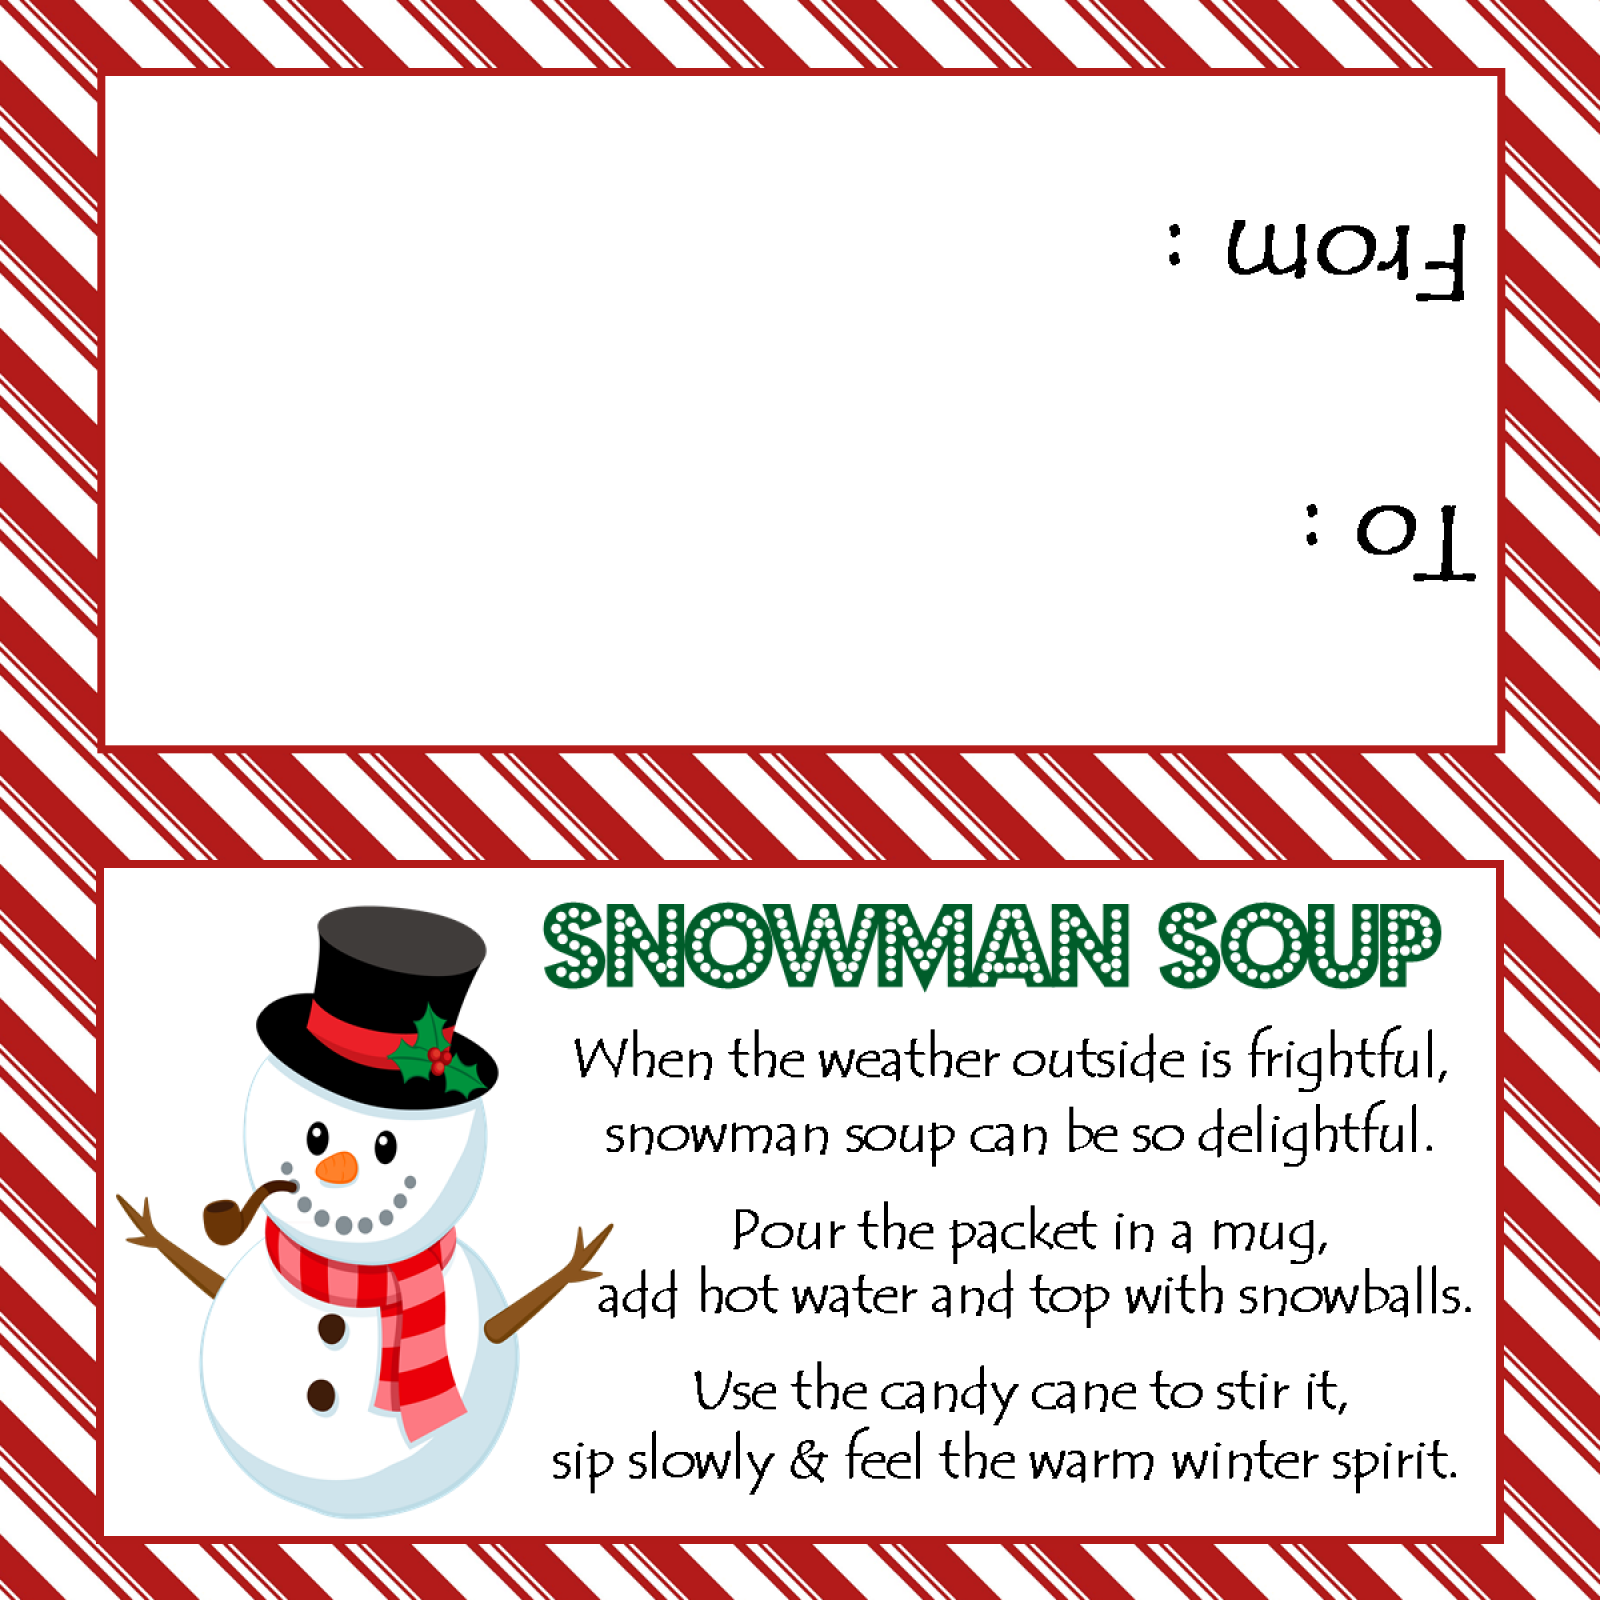 Stupendous image regarding snowman soup printable tags